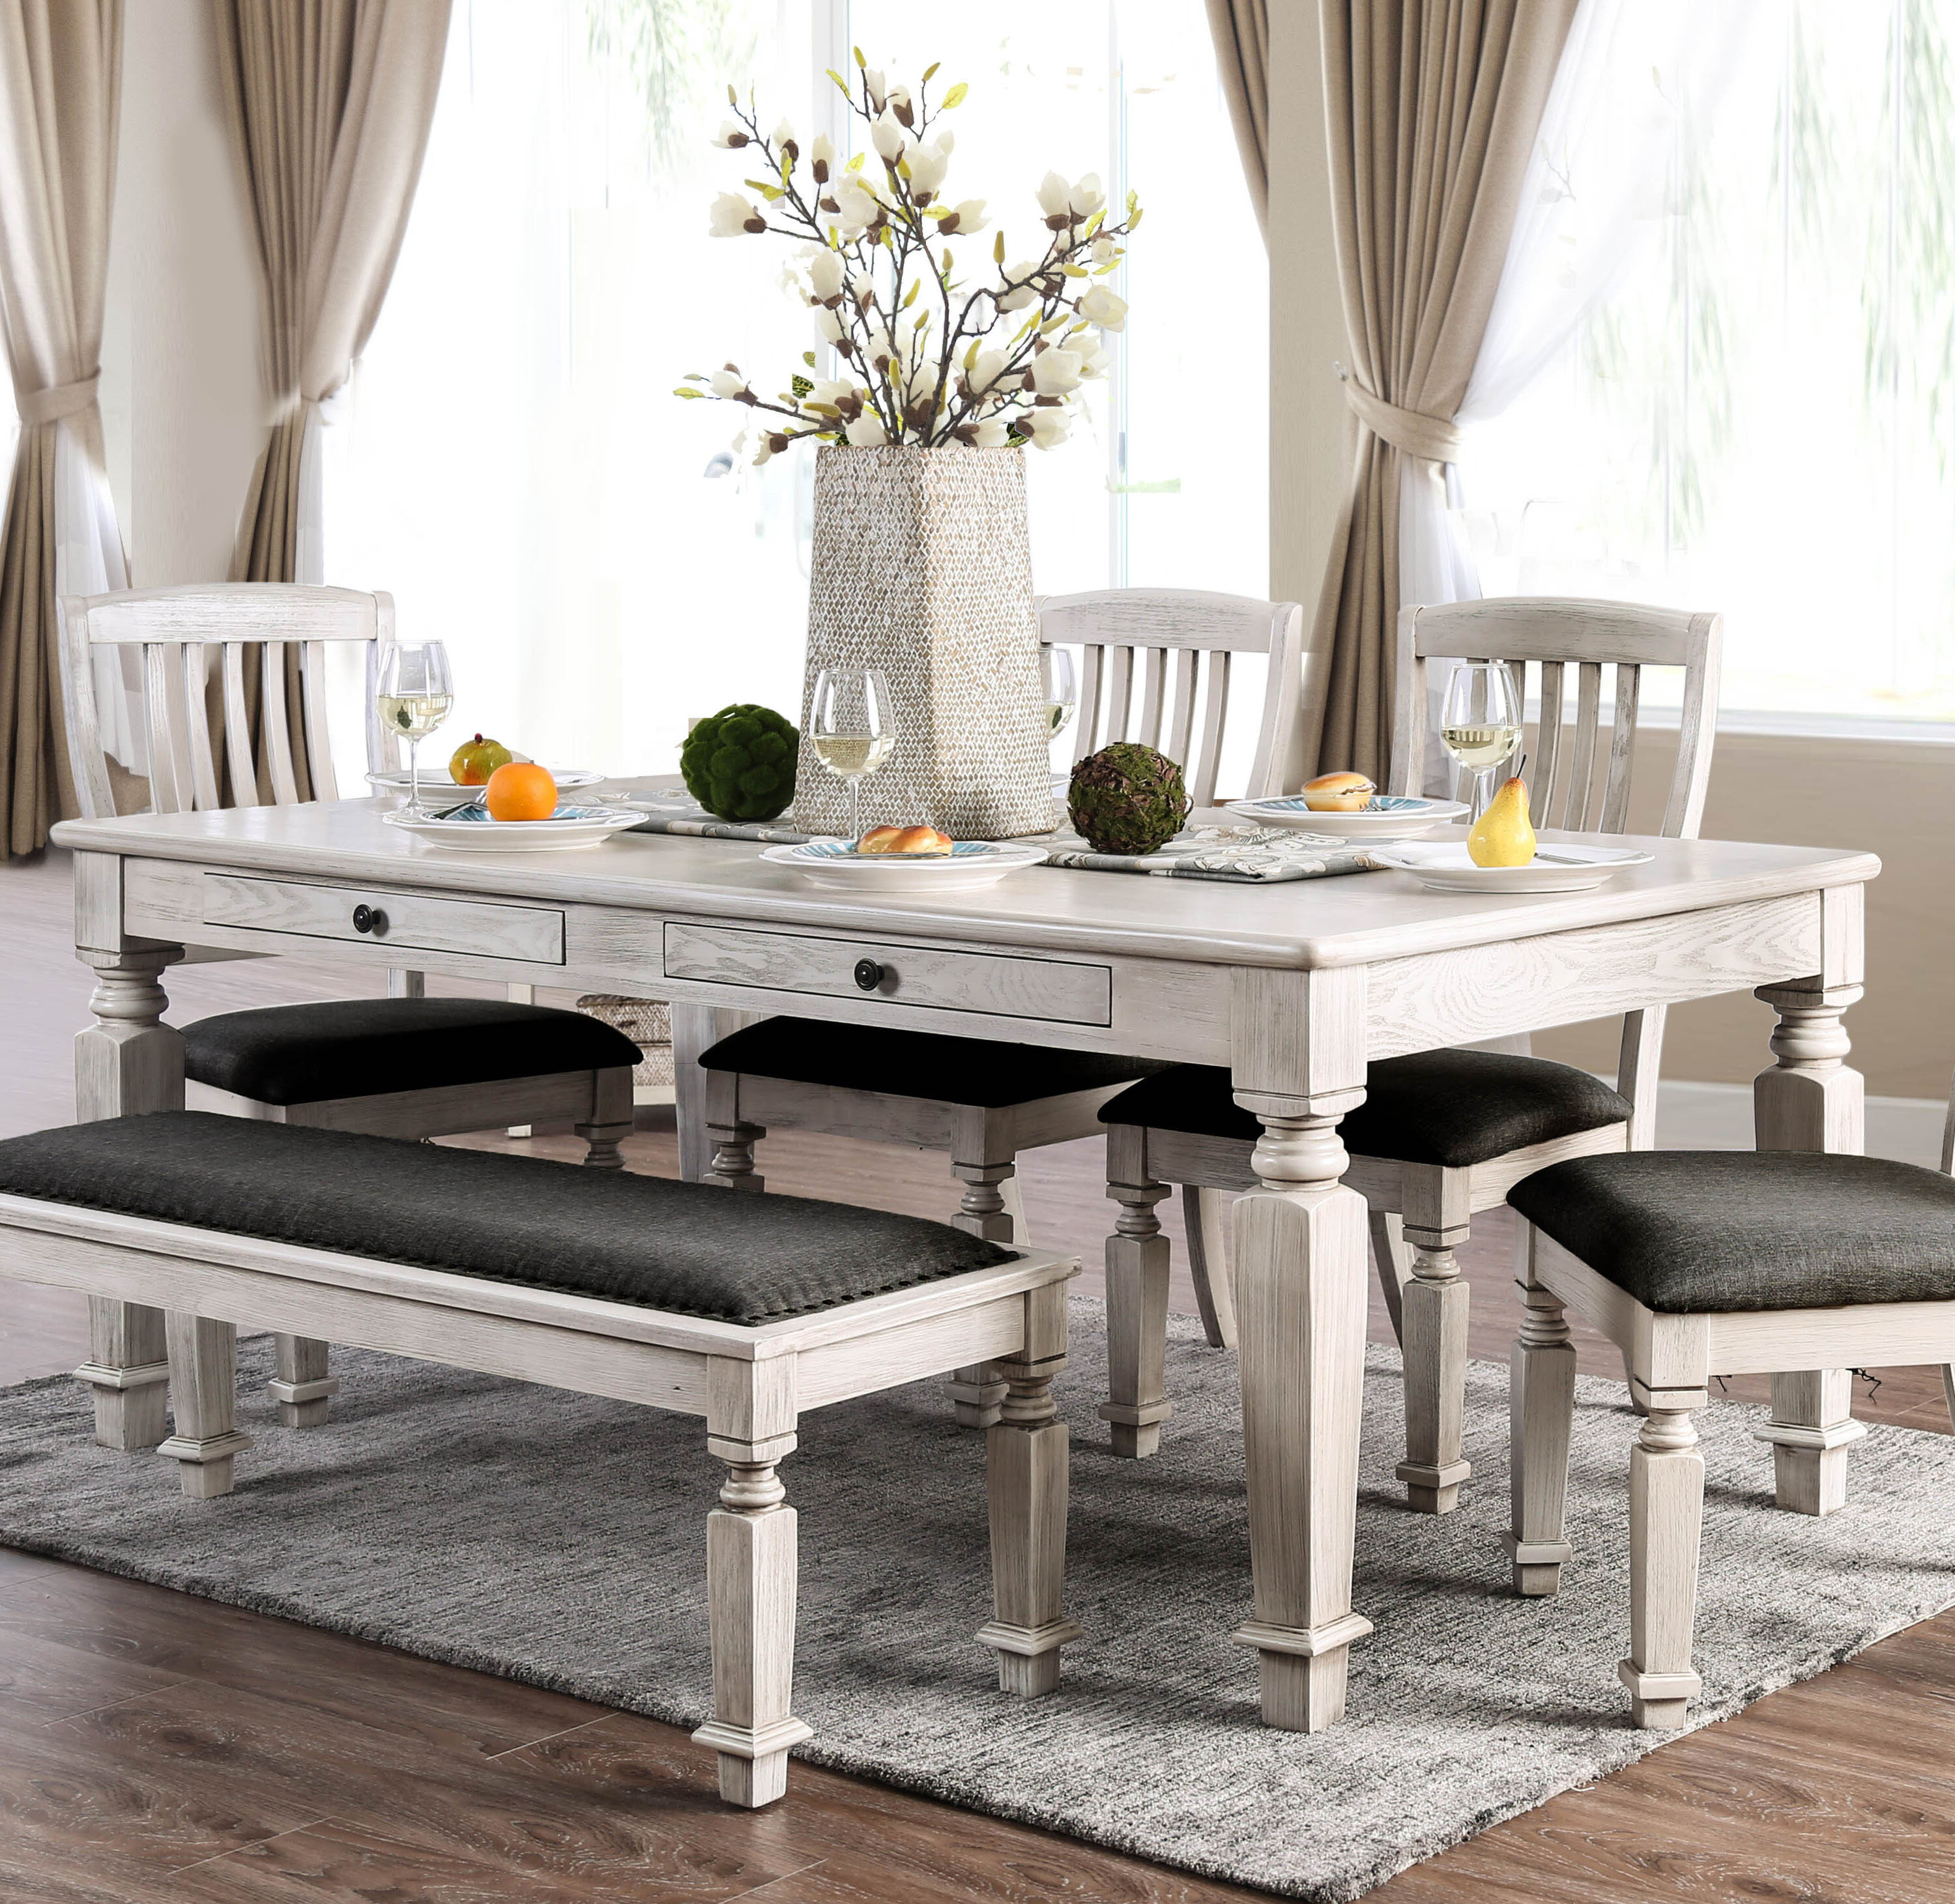 Ophelia & Co. Tomas 6 Piece Solid Wood Dining Set & Reviews | Wayfair